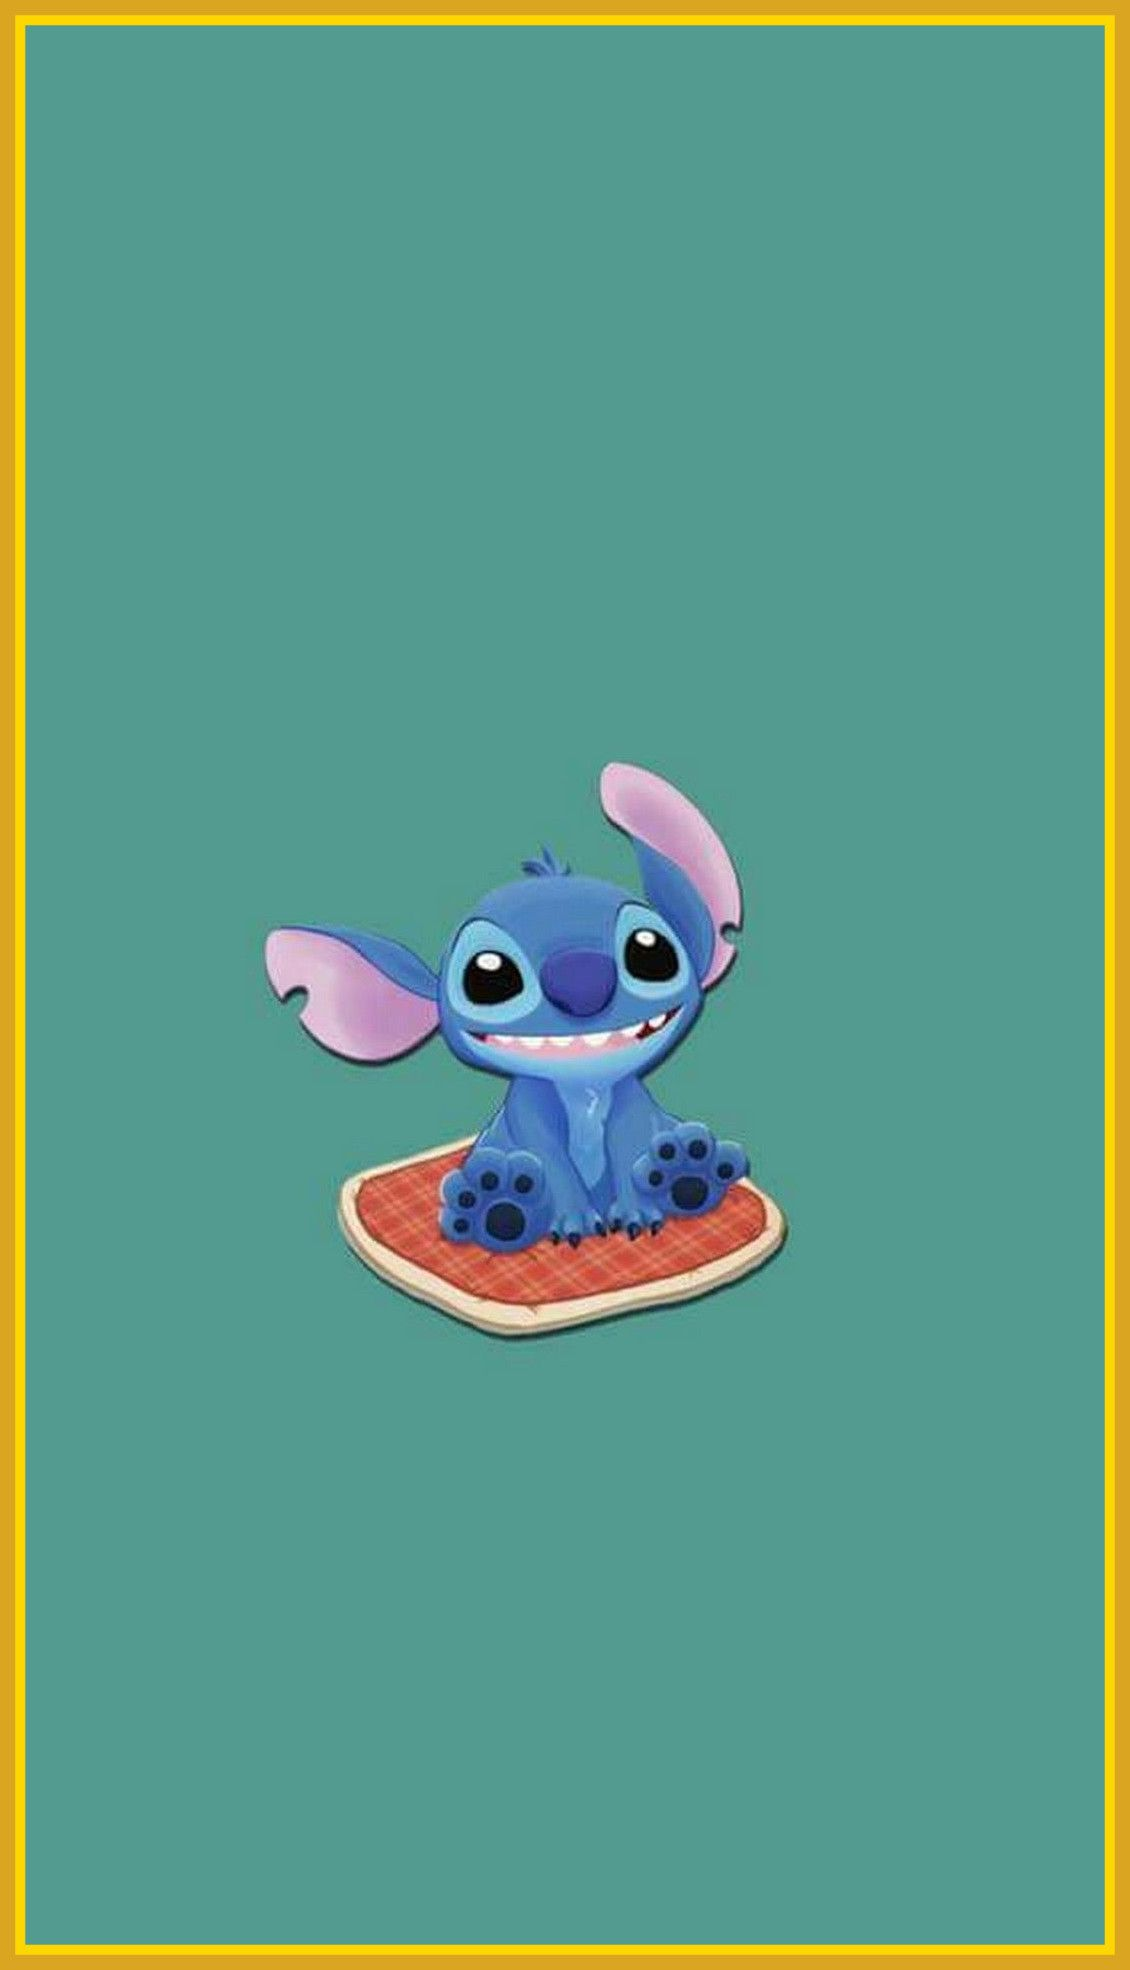 Lilo And Stich Wallpapers 71 Background Pictures Mobile Wallpaper Stitch Wallpaper Disney Iphone Wall Cute Disney Wallpaper Disney Wallpaper Cartoon Wallpaper